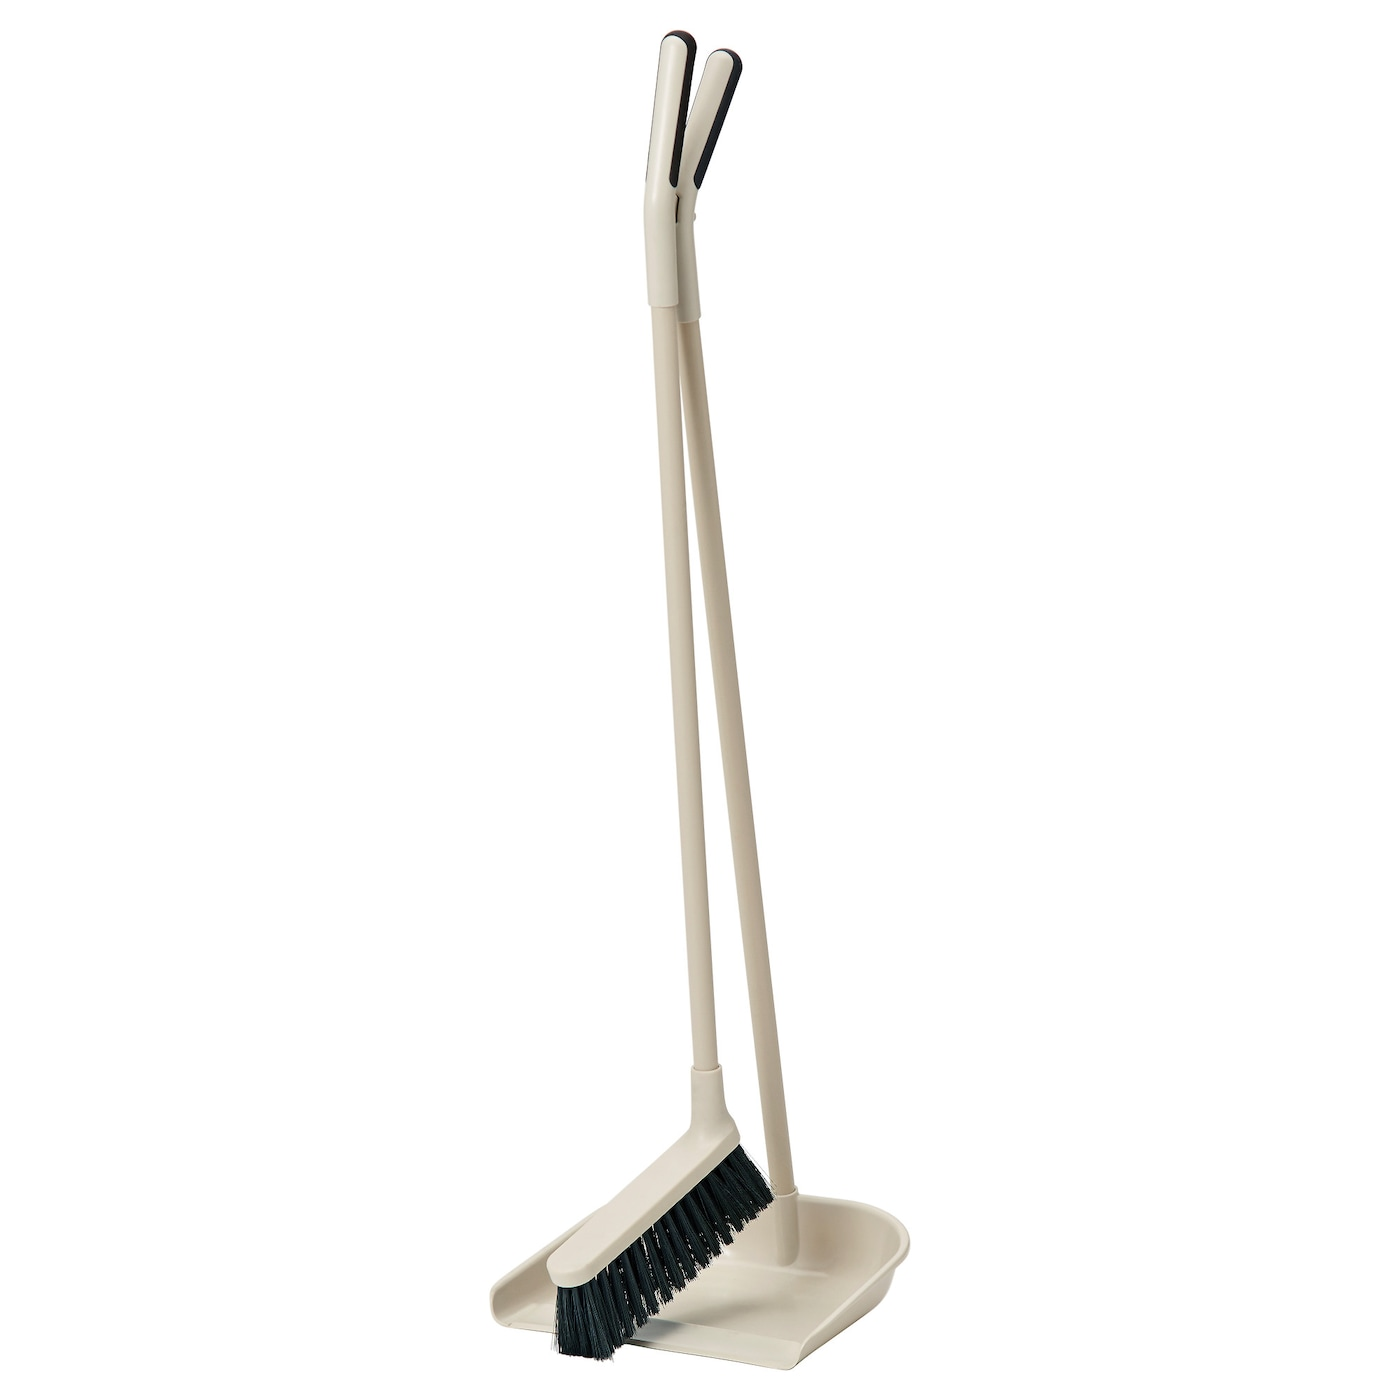 IKEA SKVALPA dustpan/broom Easy to store since the handle also functions as a holder for the broom.